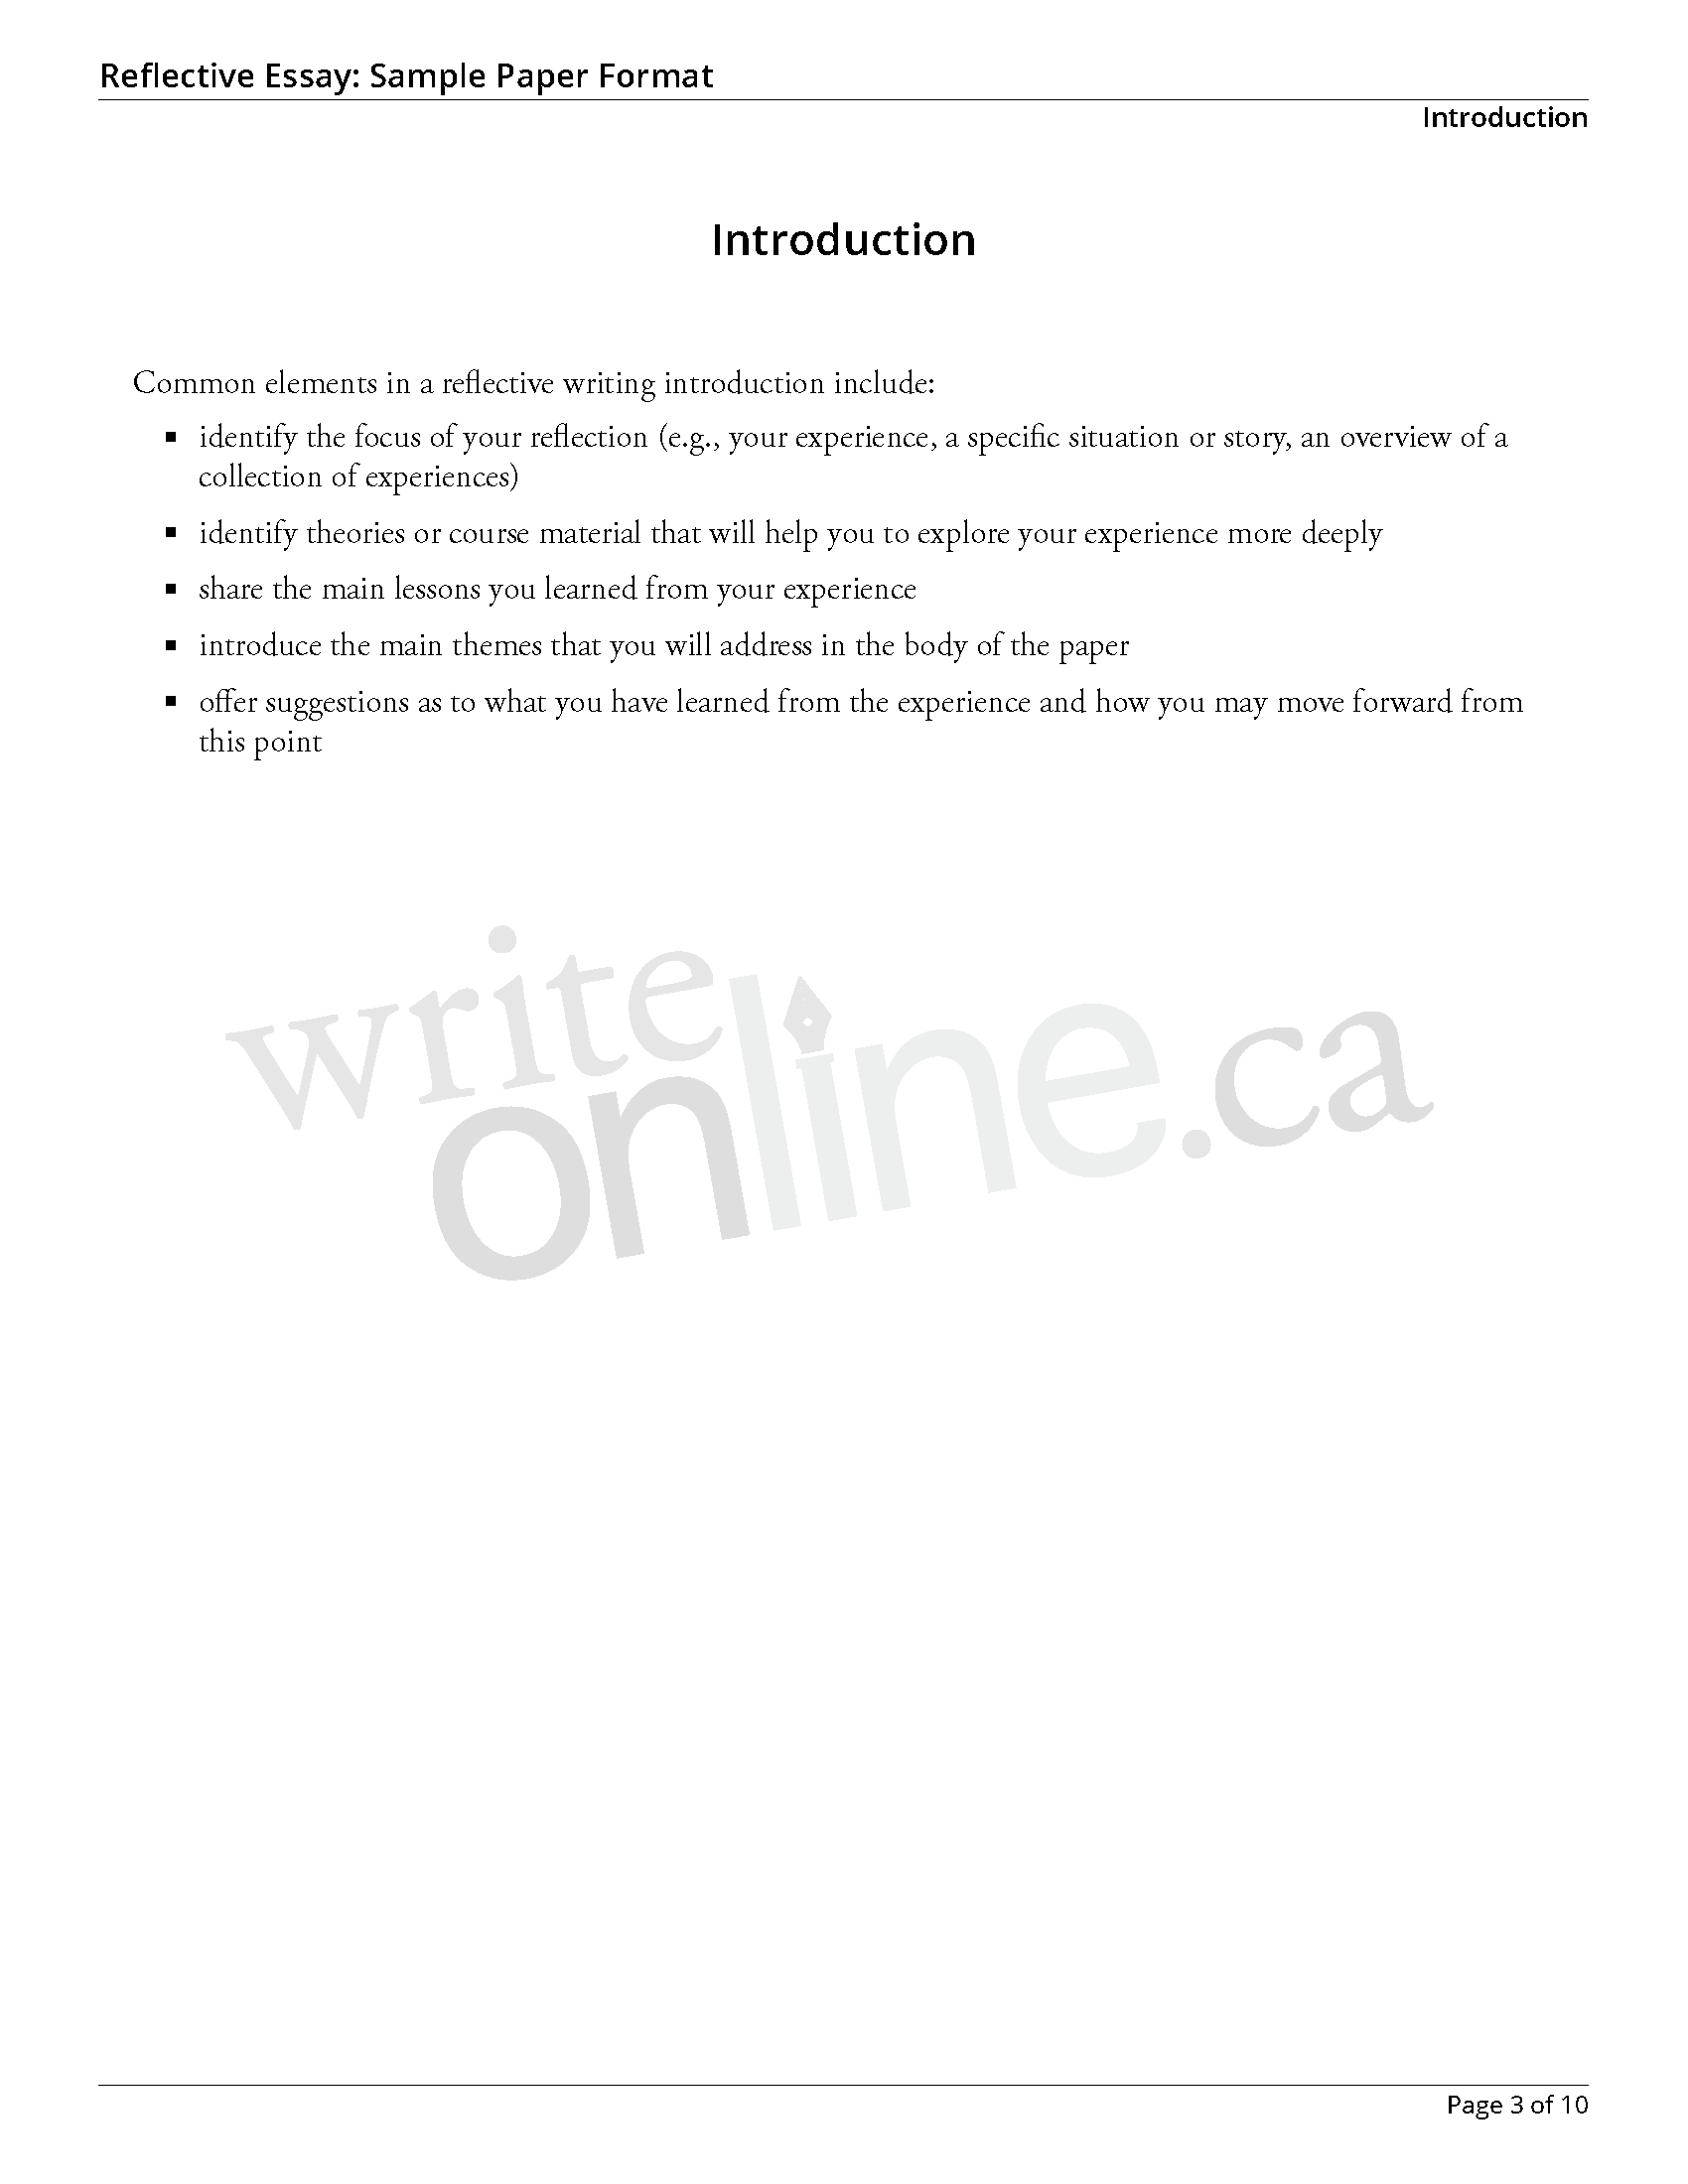 009 Reflectiveessay Sample Page 3 Essay Example How To Start Reflective Surprising A Introduction Do You An Write For Full